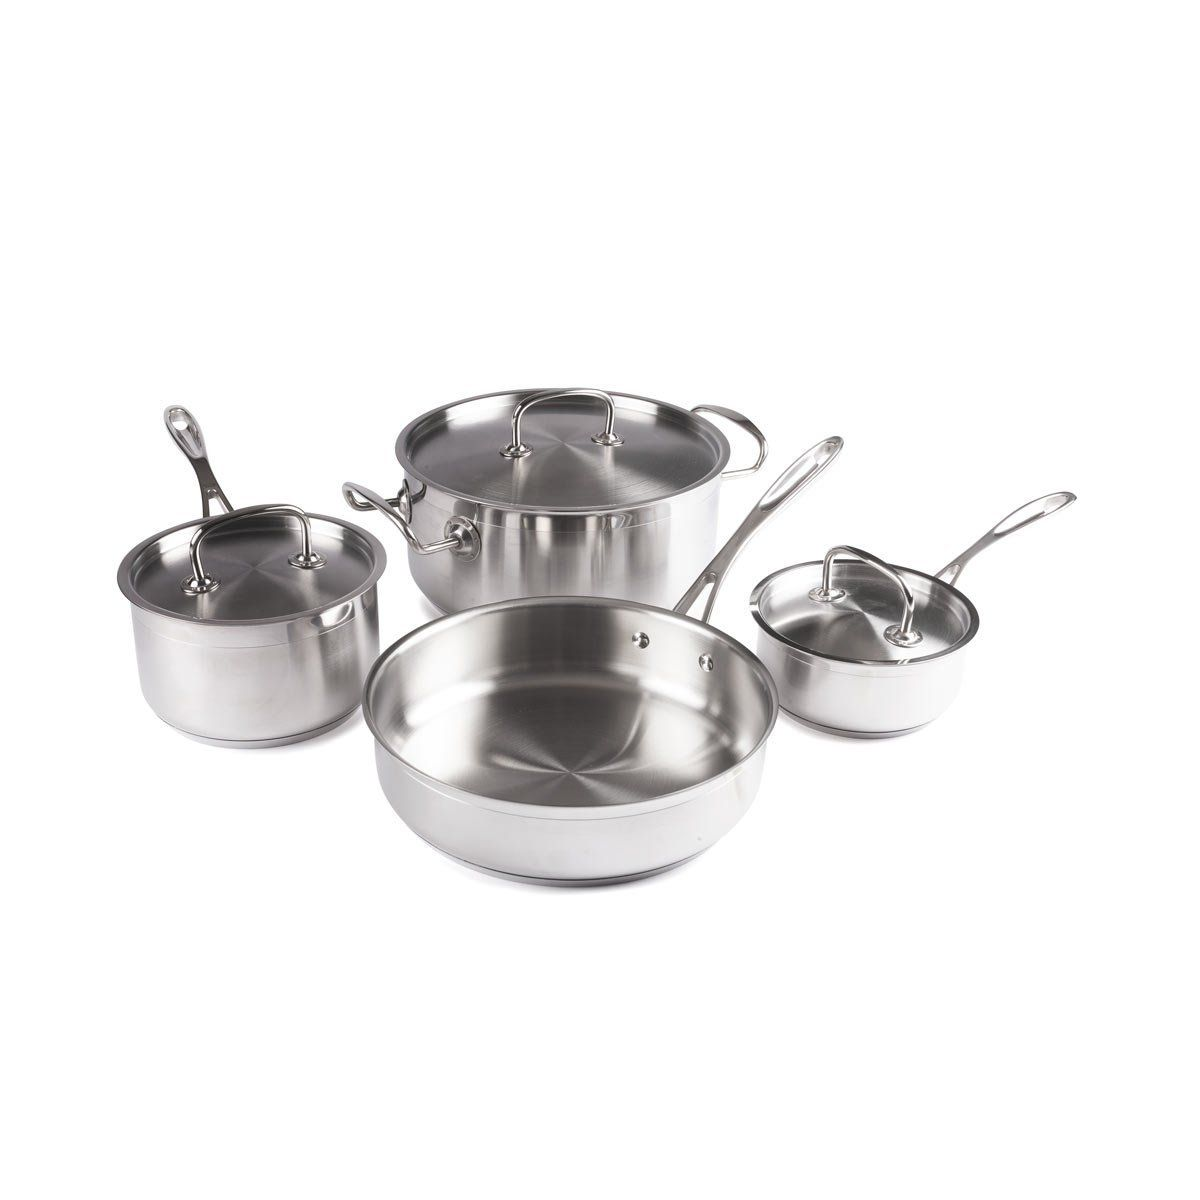 Forthechefs 7 piece commercial grade premium induction